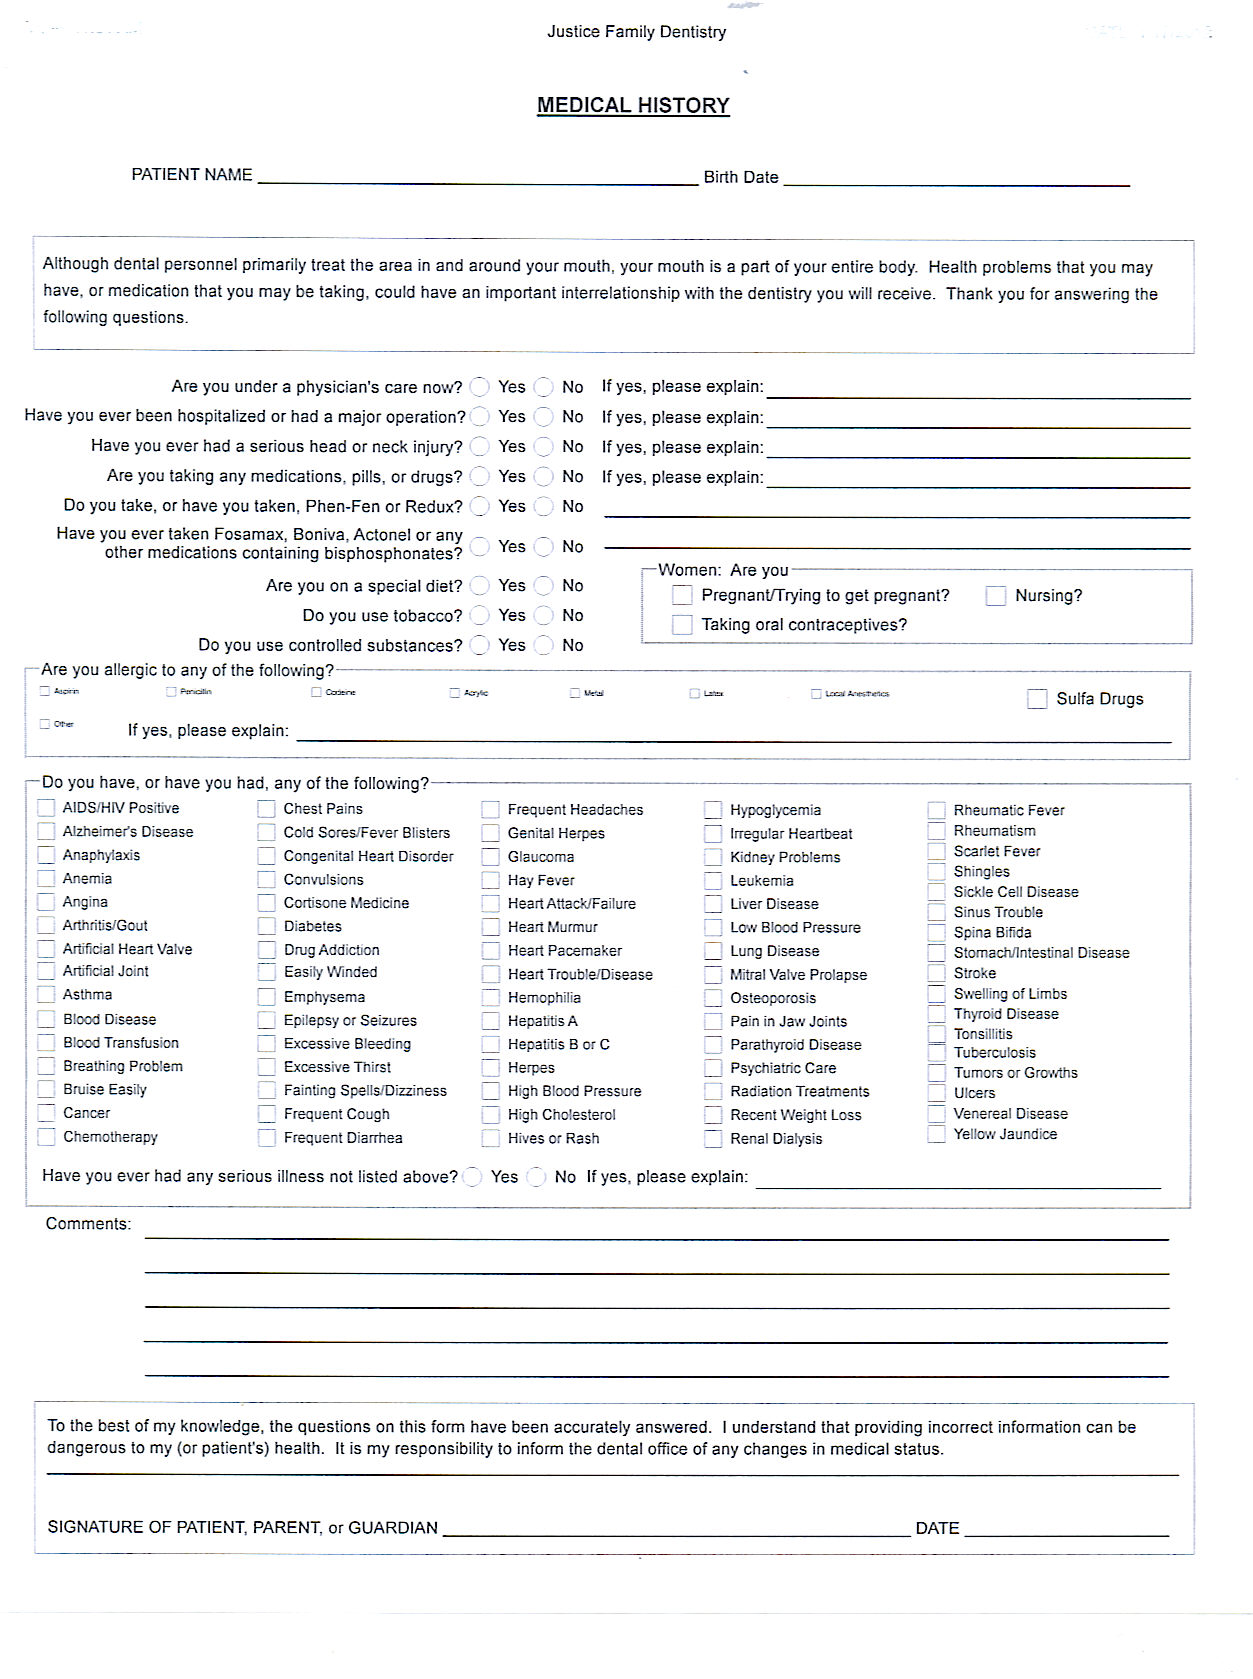 New patient medical history form template maxwellsz